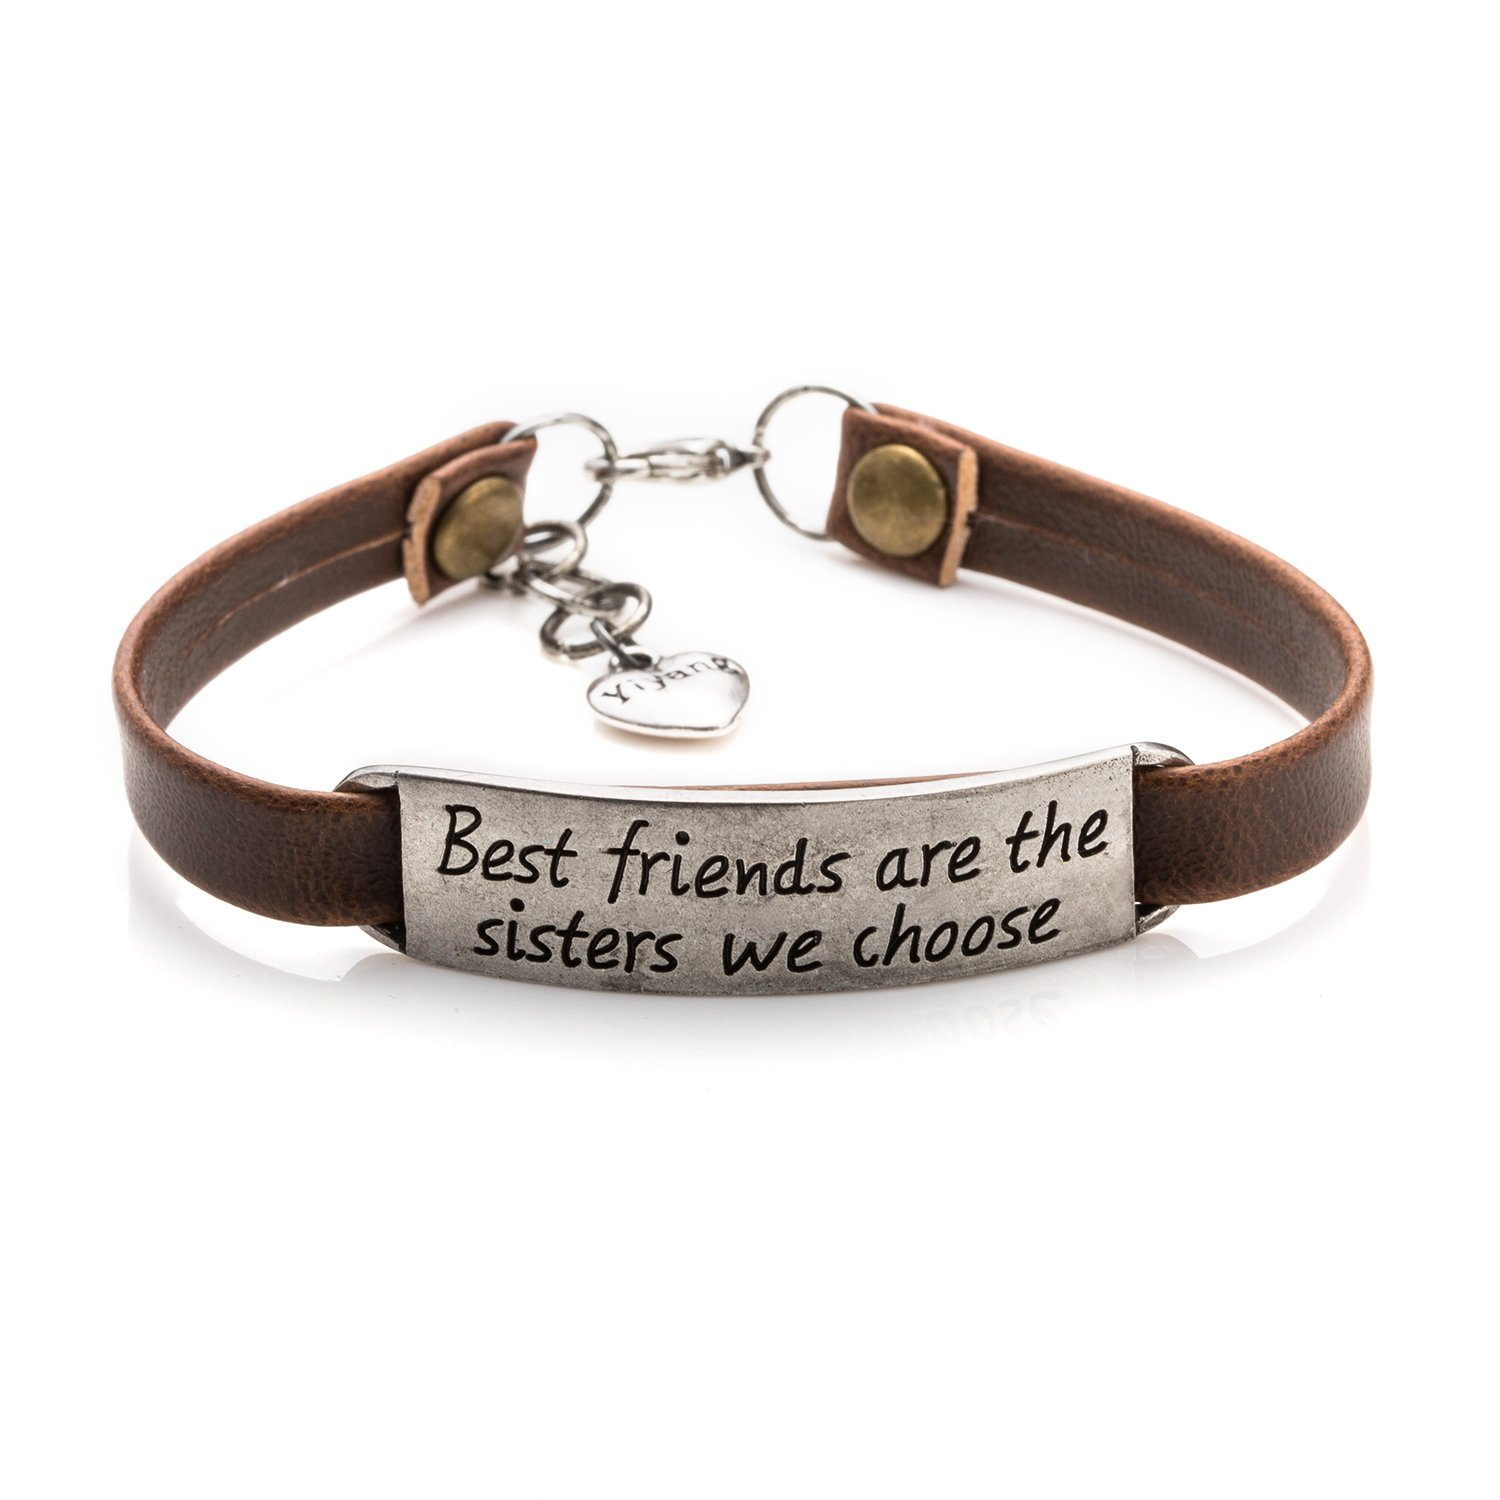 Yiyangjewelry Best Friend Gifts for Sister Inspirational Leather Bracelet Birthday Wedding Graduation Gifts(Brown Best friends are the sisters we choose)